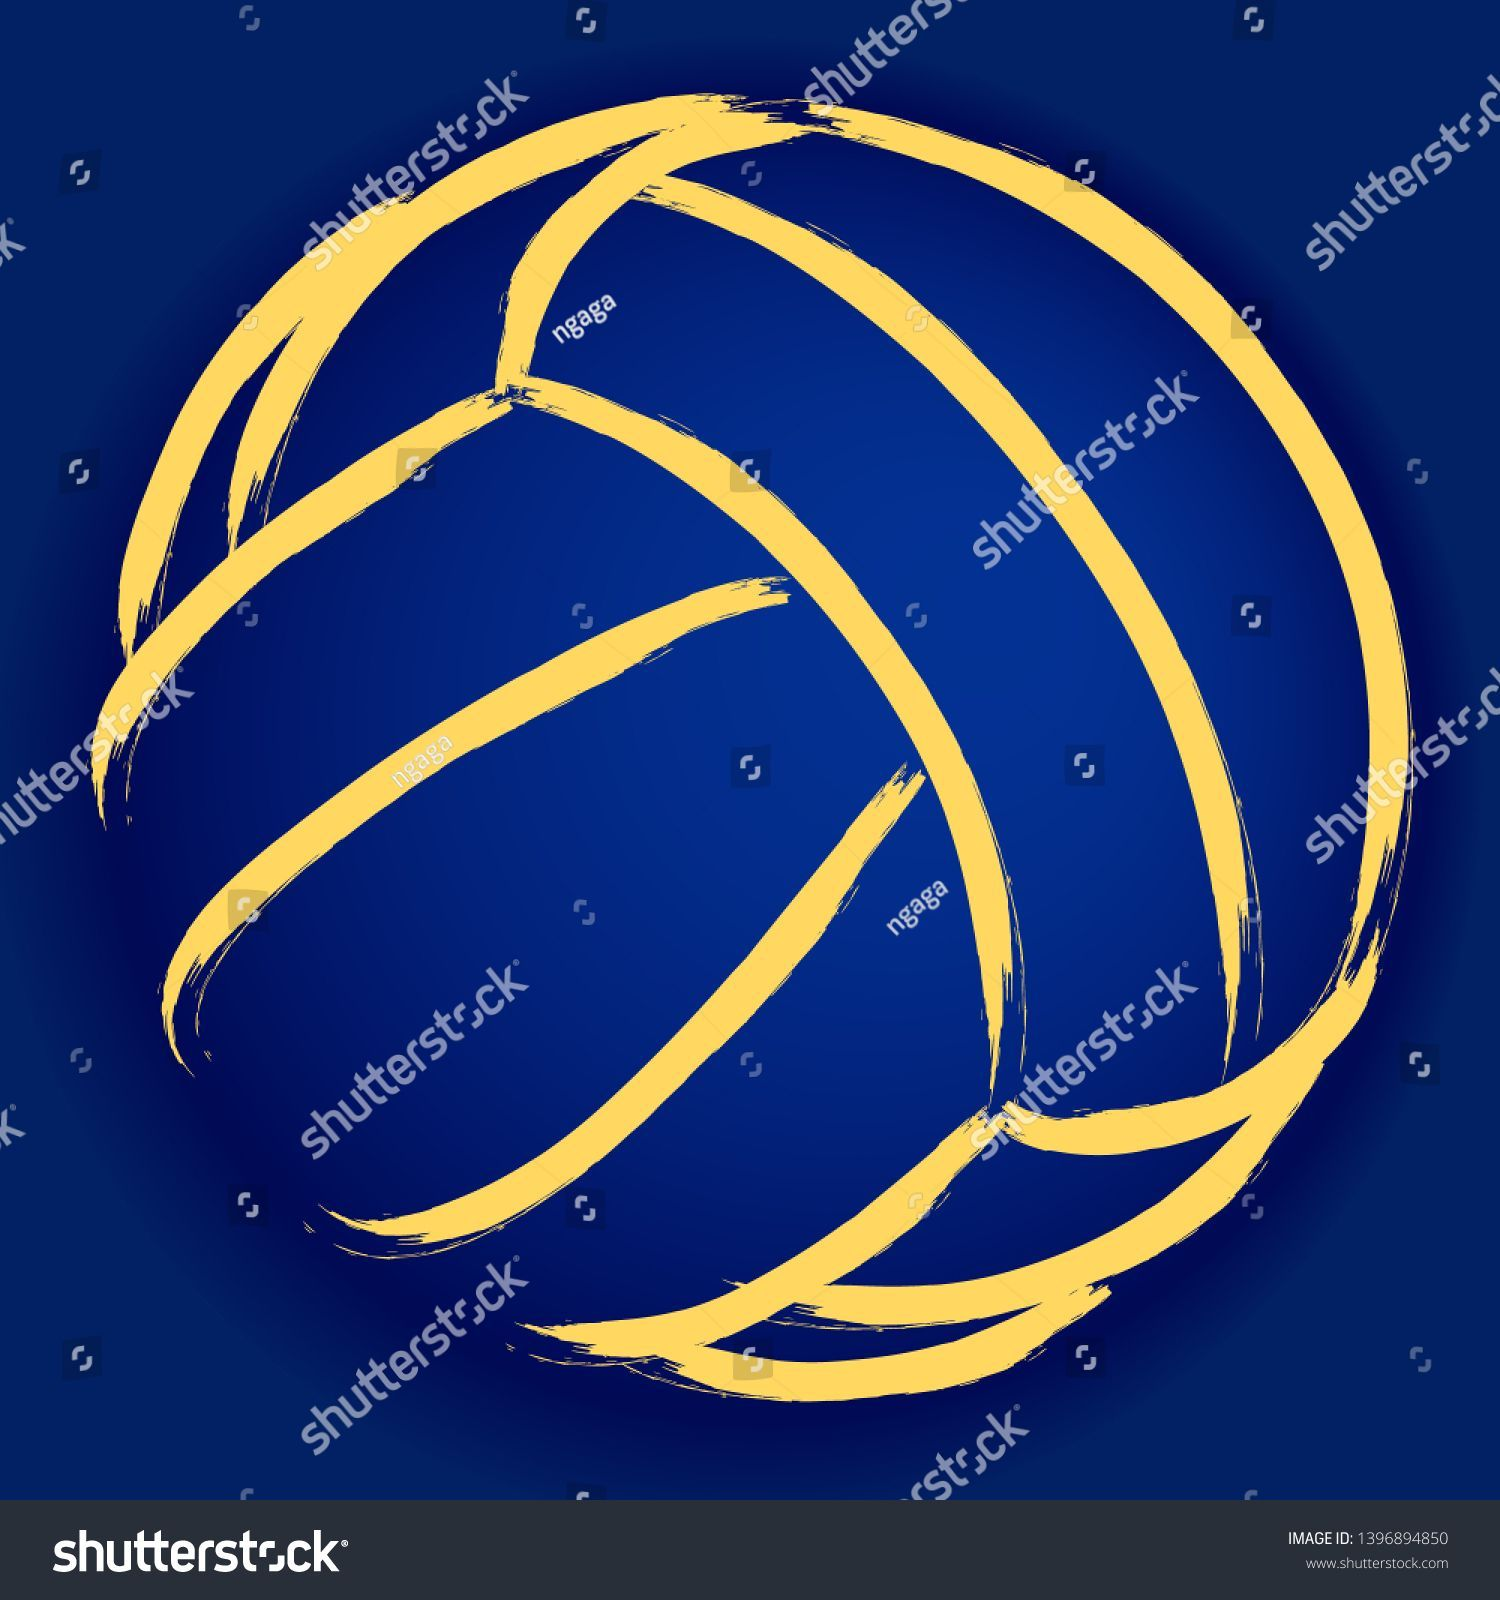 Stylized Illustration Volleyball Background Sport Vector Stock Vector Royalty Free 1396894850 Background Free In 2020 Stylized Volleyball Backgrounds Stock Vector